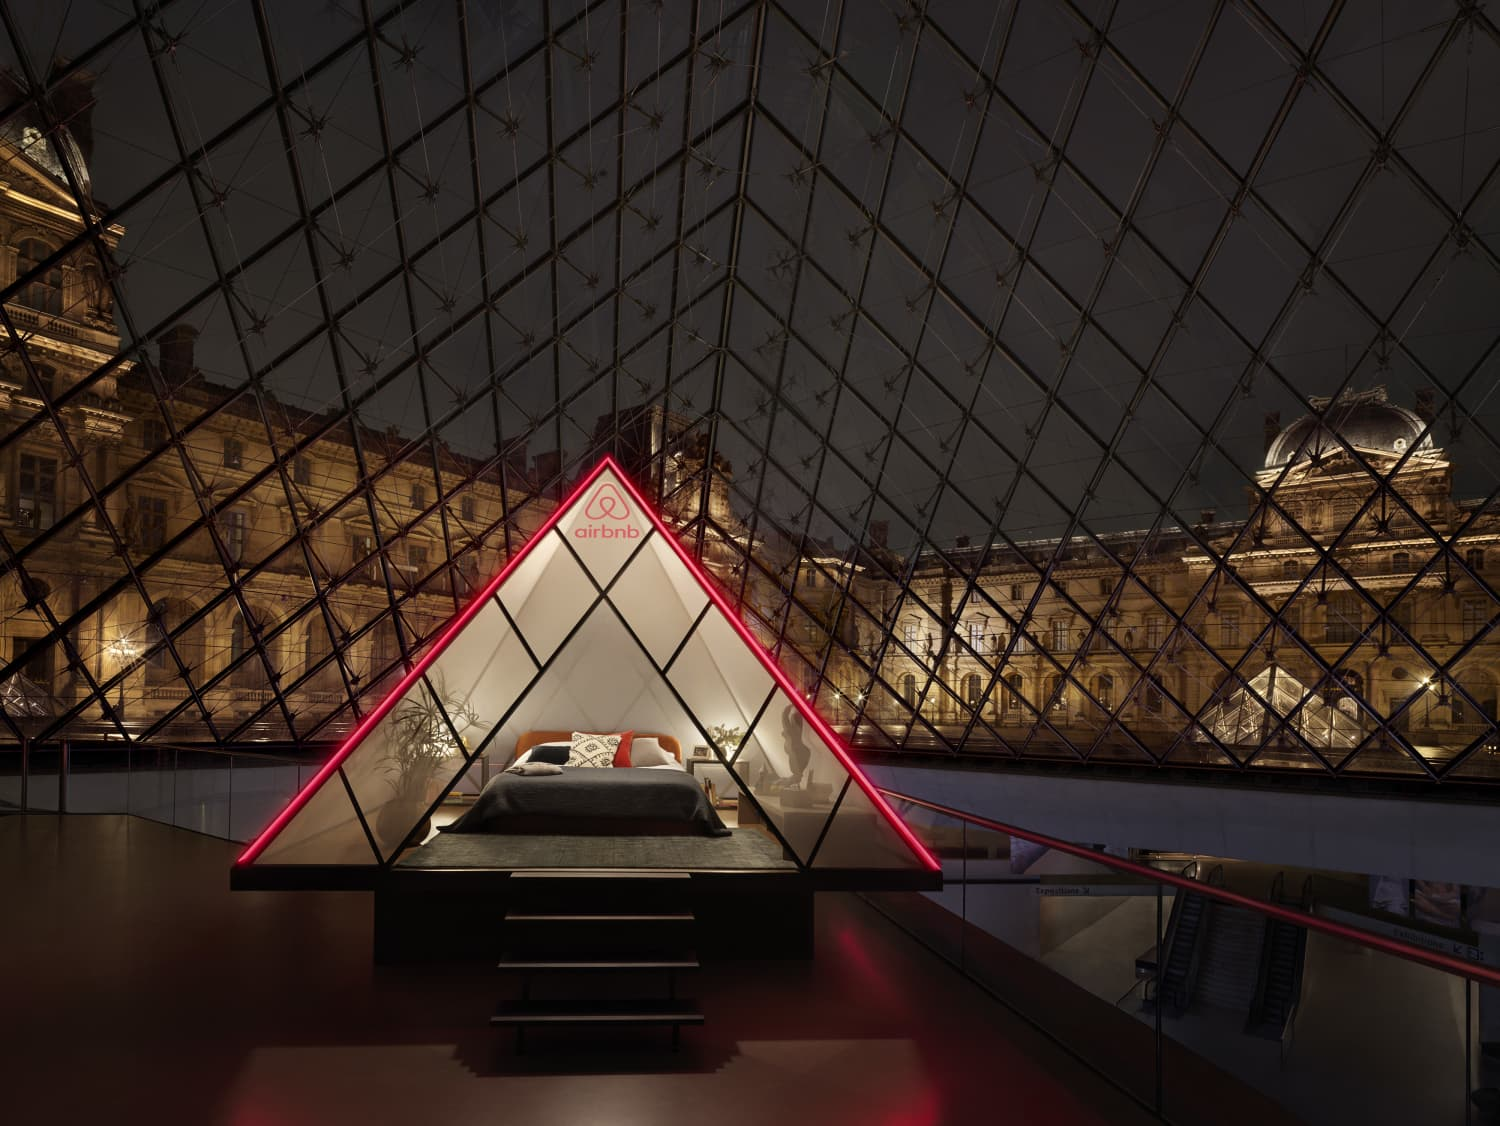 You Can Win a Sleepover at The Louvre Hosted By Airbnb (and Mona Lisa)